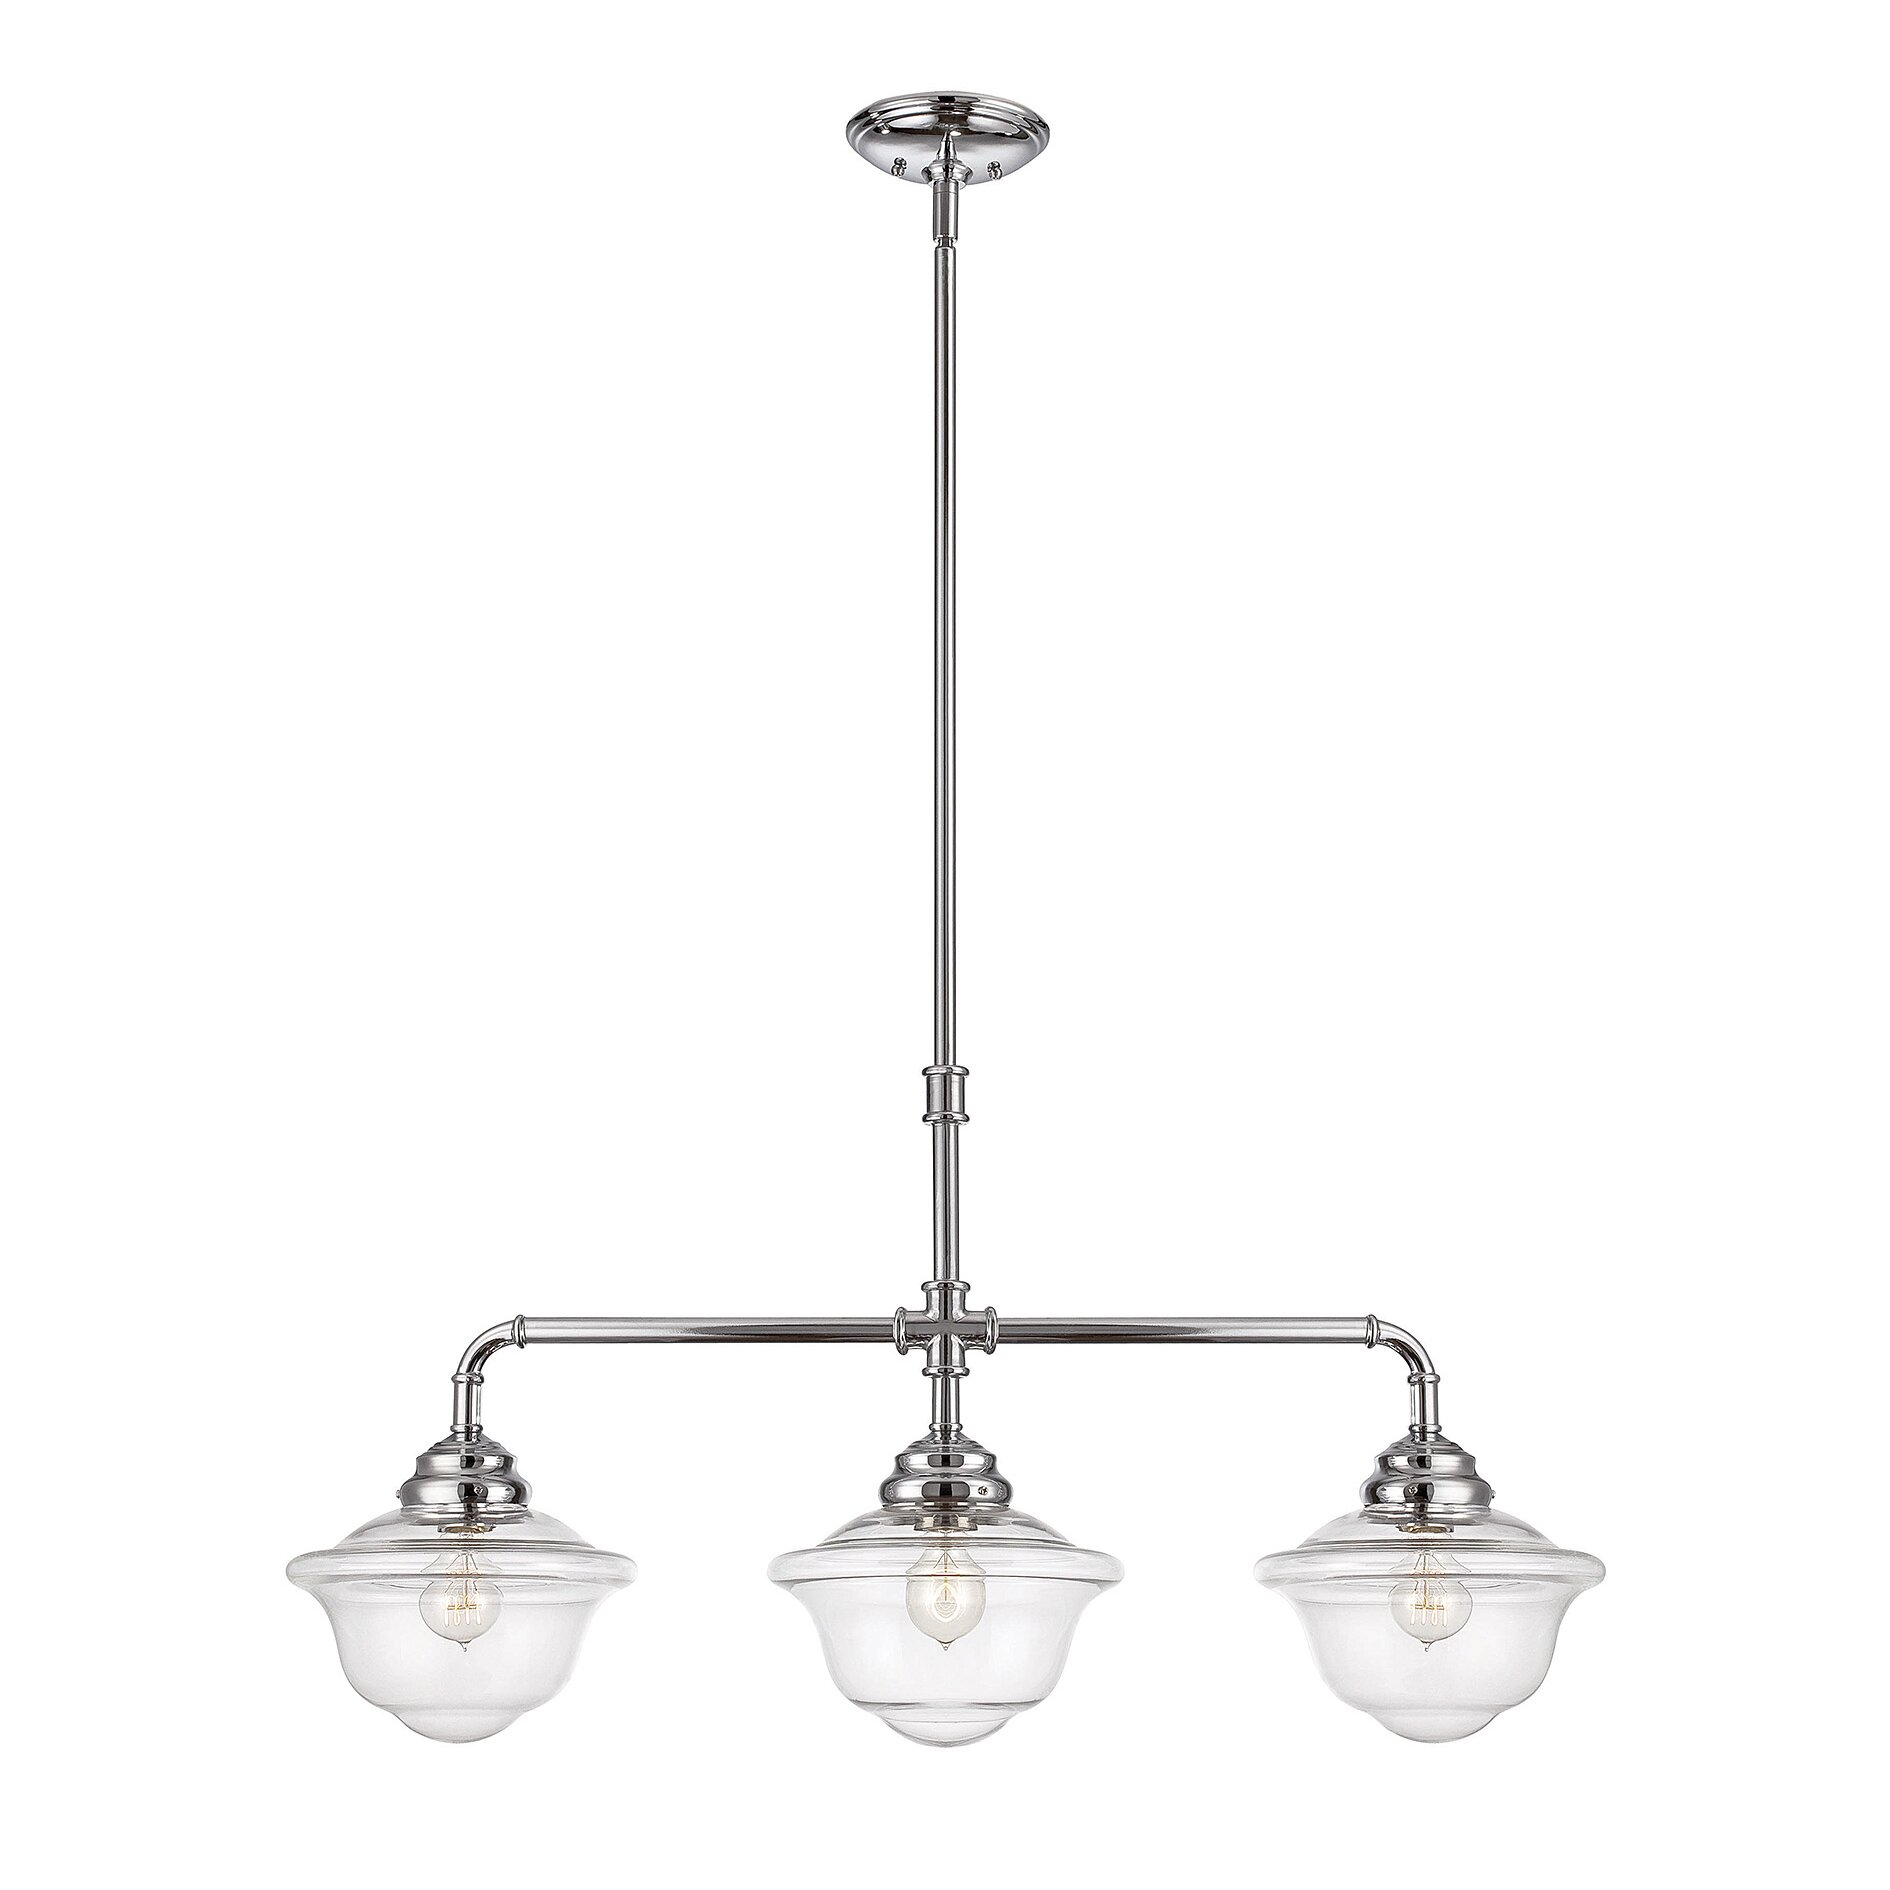 Kitchen Island Lantern Pendants: Trent Austin Design Davis 3 Light Kitchen Island Pendant & Reviews